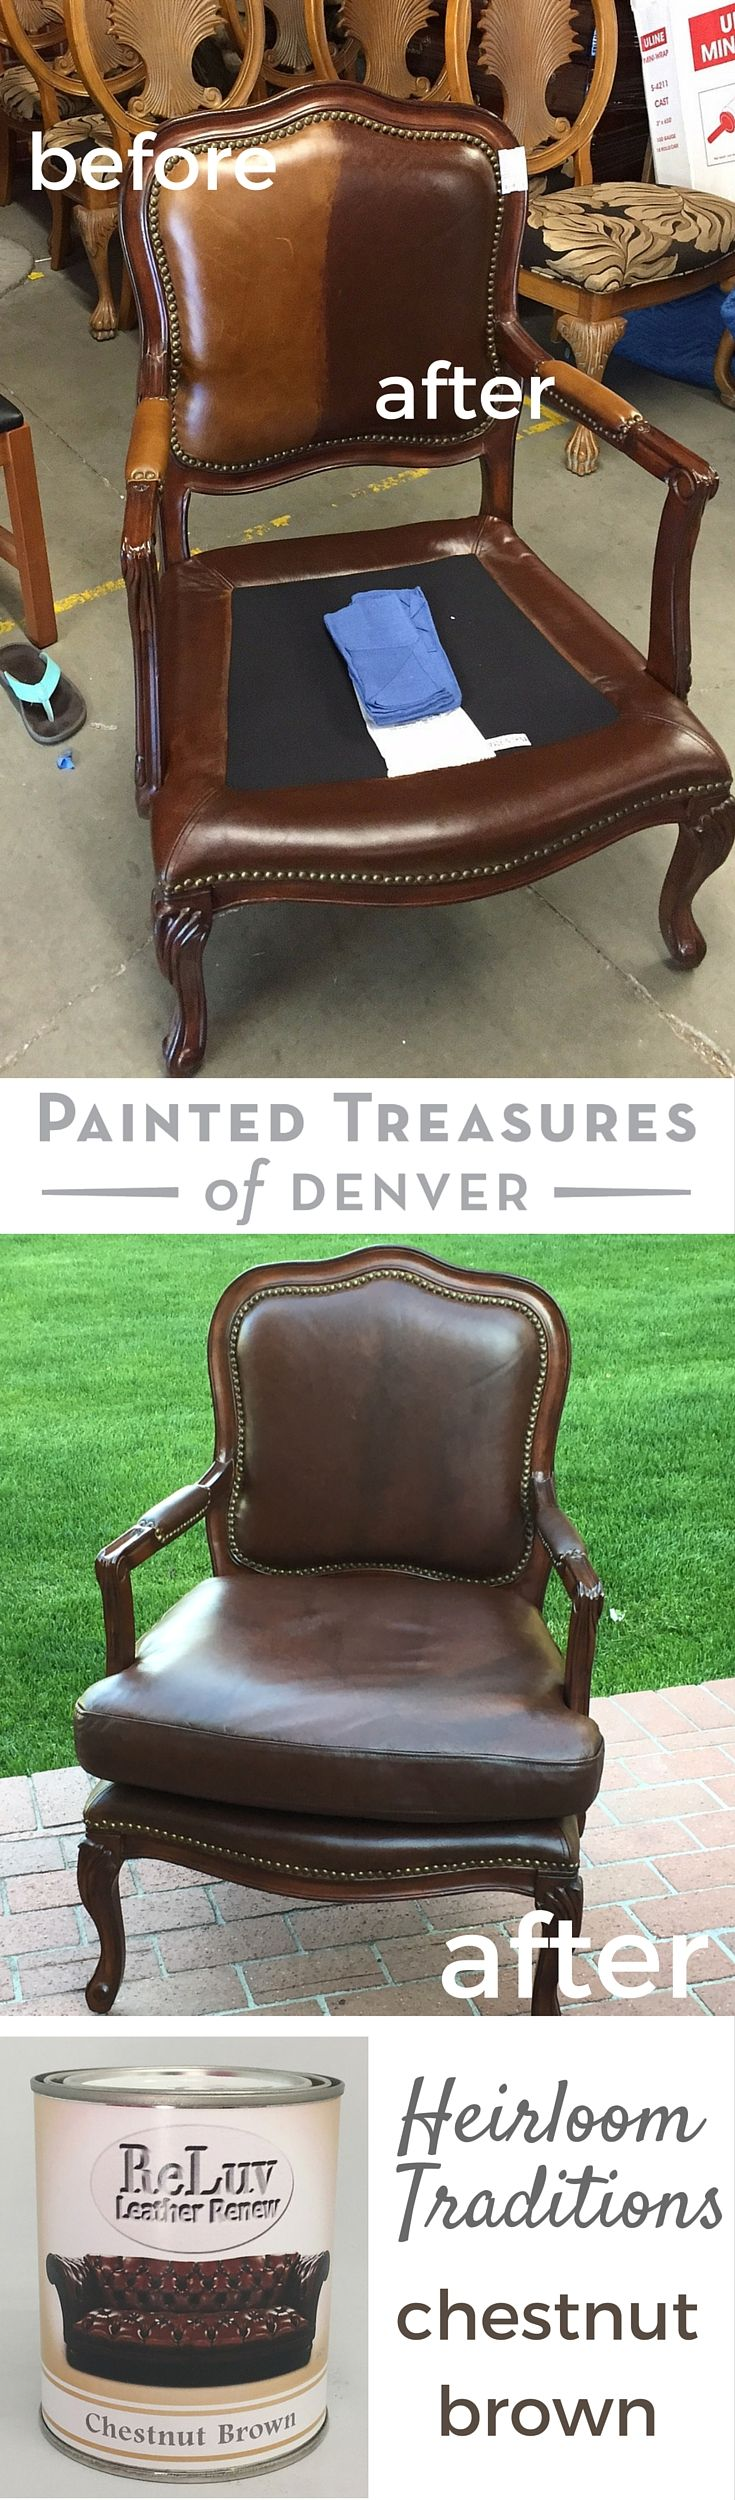 Paint Leather Furniture easily with Reluv! I gave this faded leather chair a new life with Heirloom Tradition's Reluv in Chestnut Brown. The final product doesn't rub off on your cloths, and fixes flaws, worn spots and signs of age with a fresh coat of paint! Get 10% off these products using PAINTEDTREASURES promo code. Painted Treasures of Denver